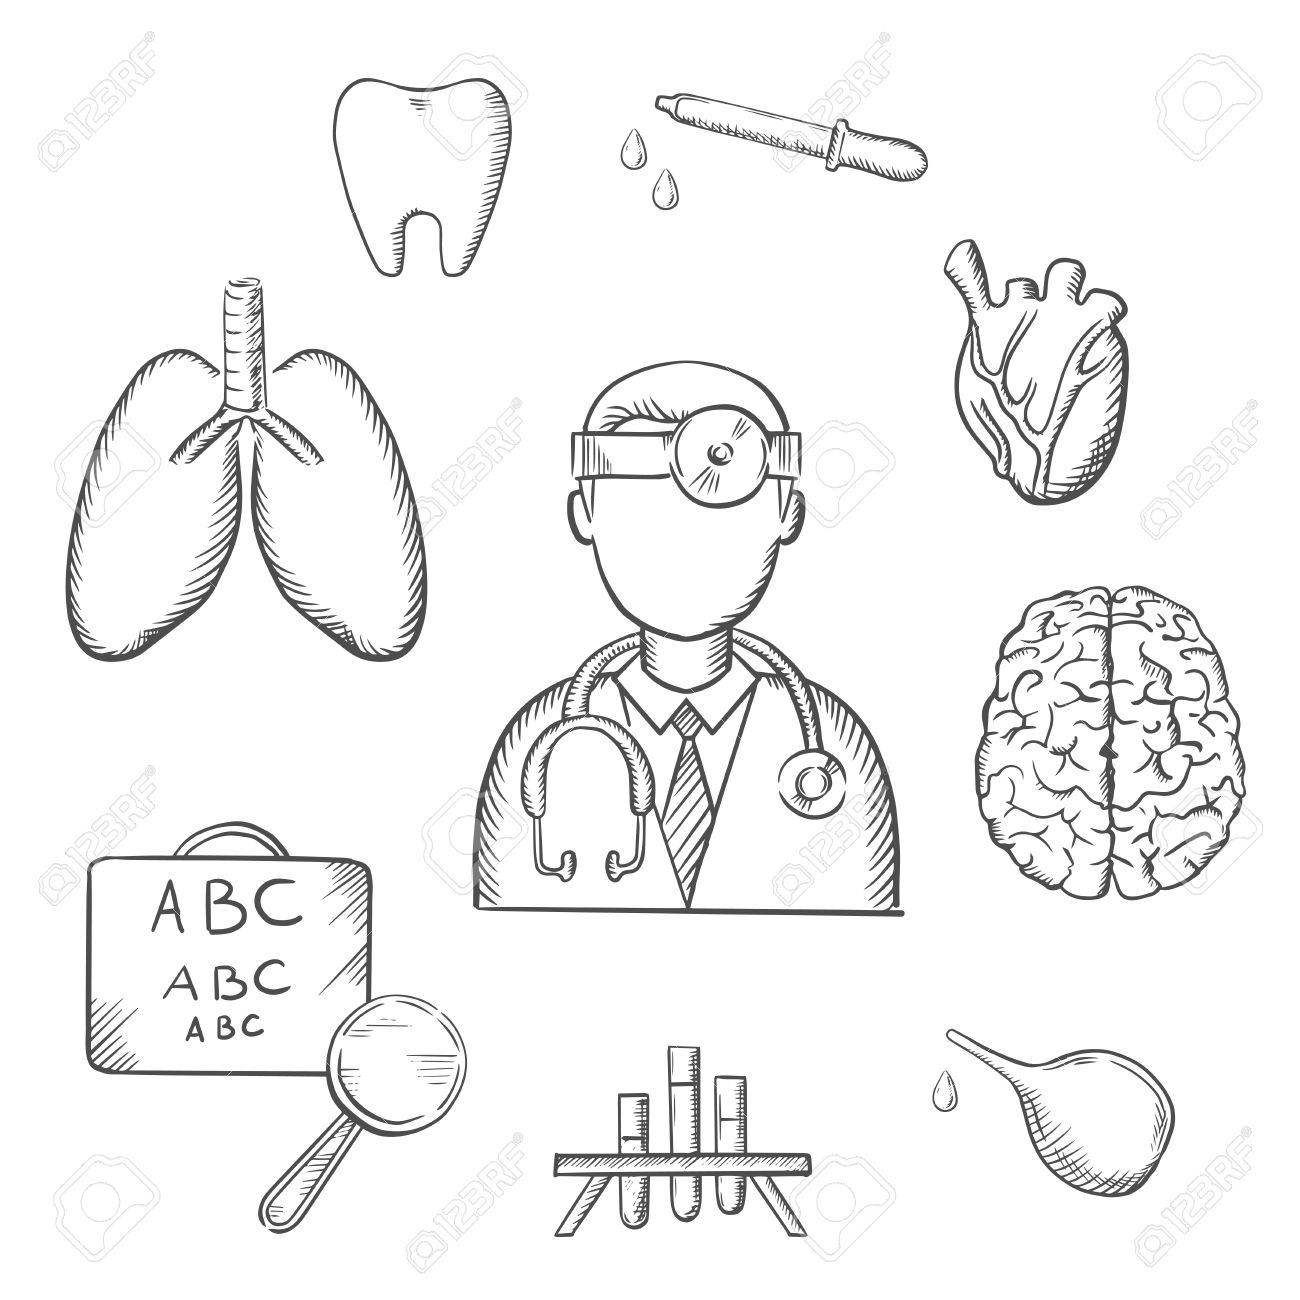 Medical sketch icons with doctor encircled by an eye chart lungs medical sketch icons with doctor encircled by an eye chart lungs tooth eye geenschuldenfo Choice Image